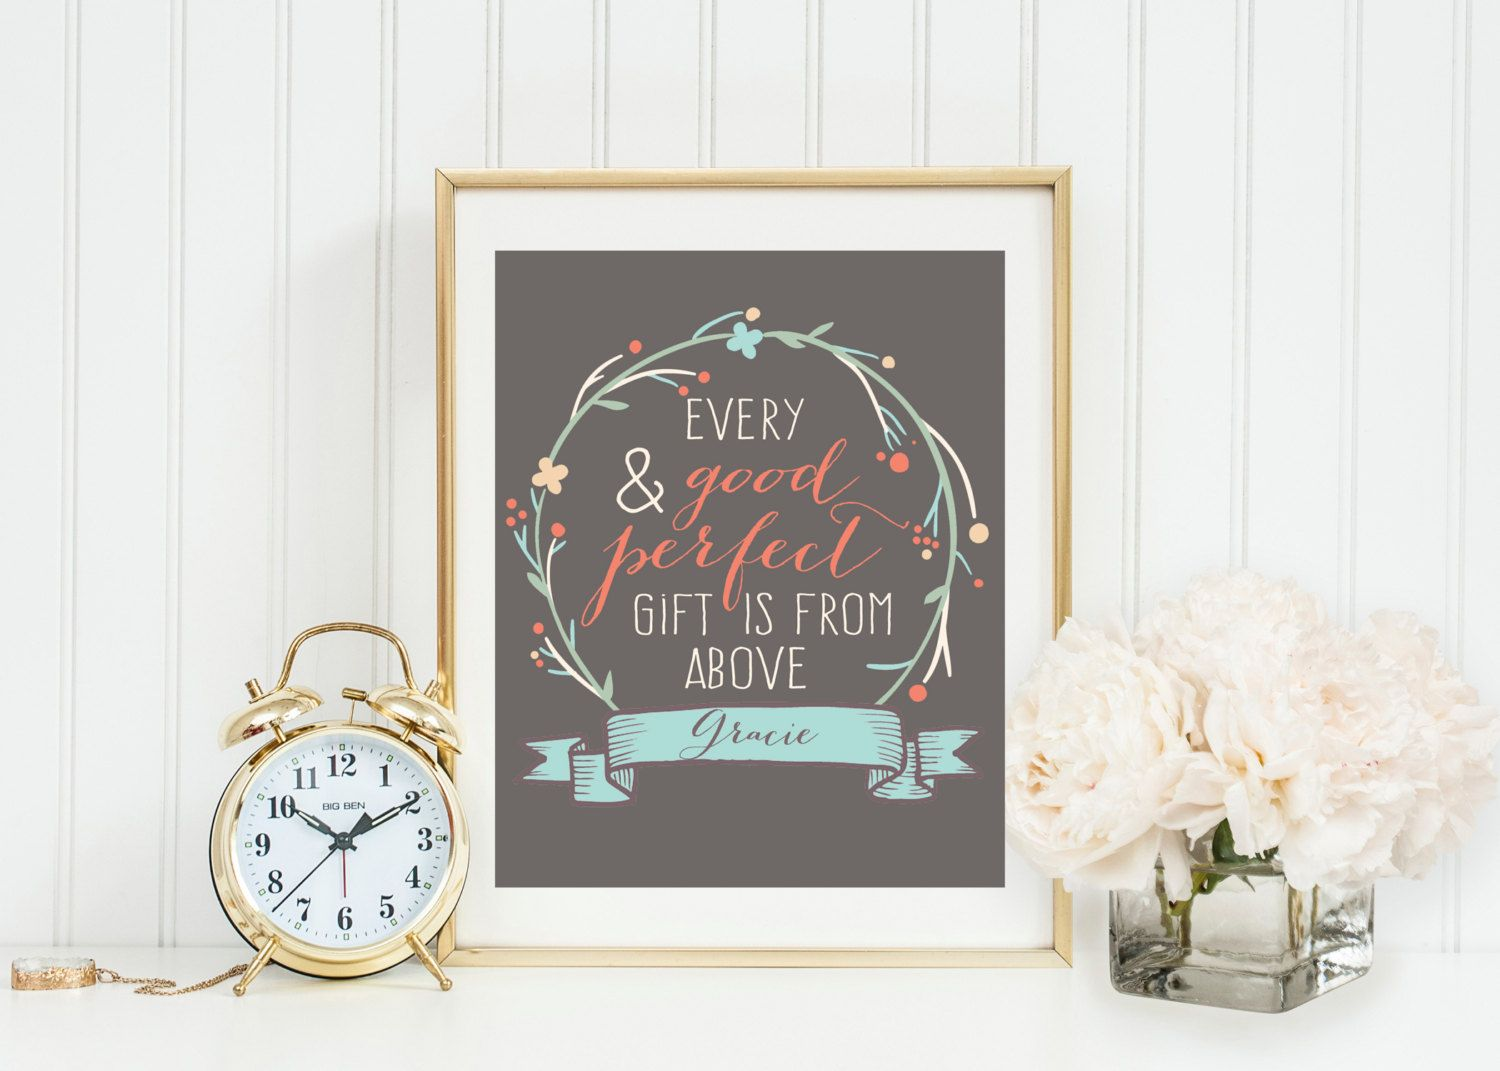 Every good and perfect gift comes from above wall artcoral